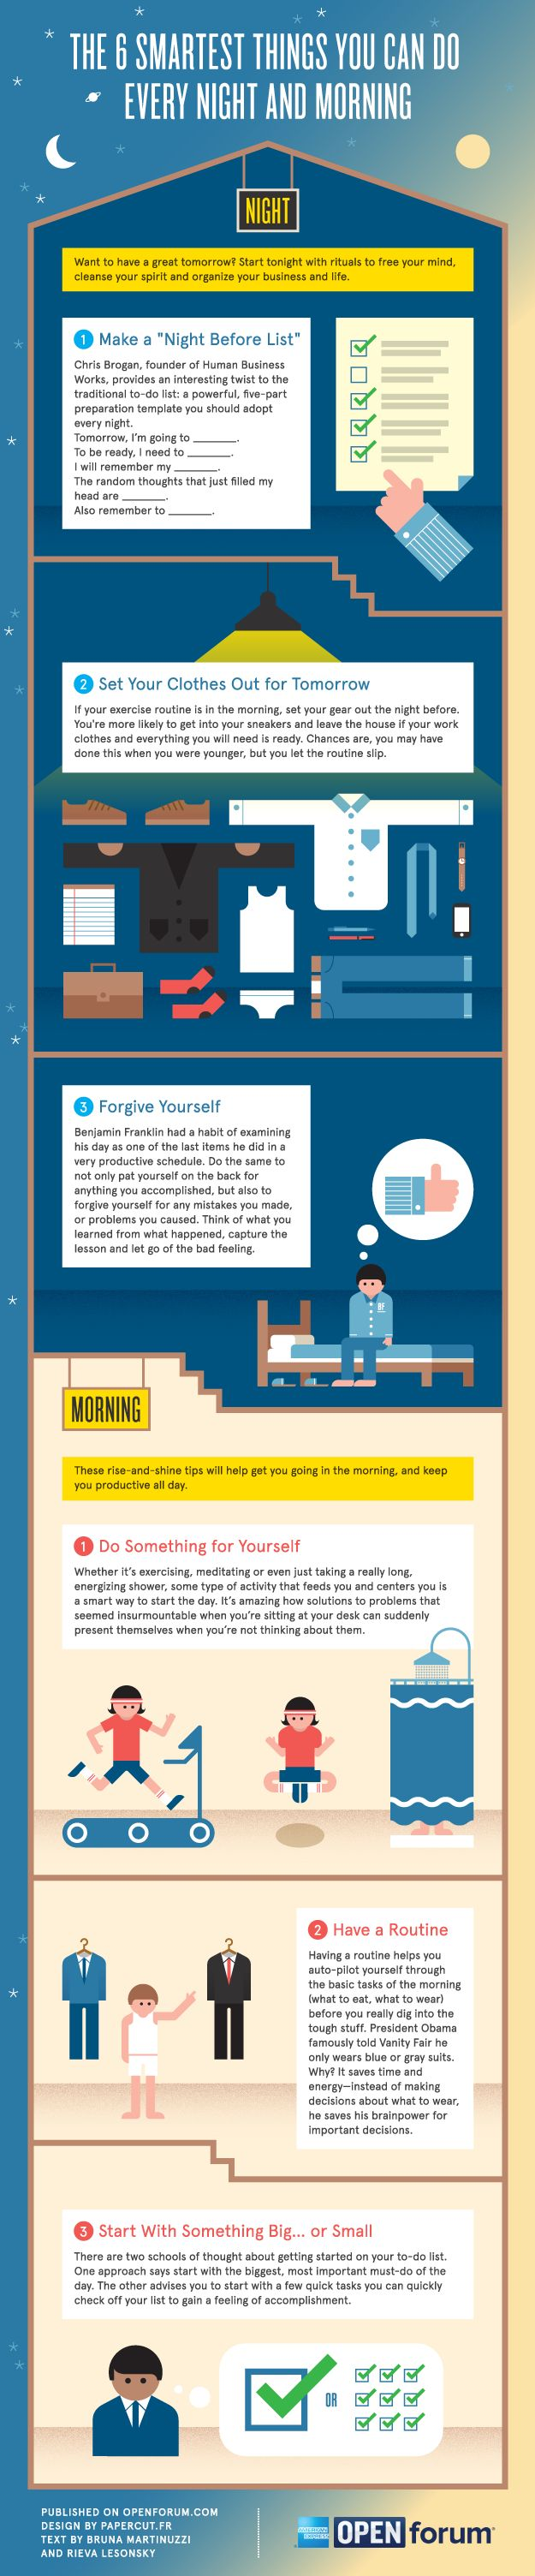 The Six Smartest Things You Can Do Every Night And Morning [#infographic]